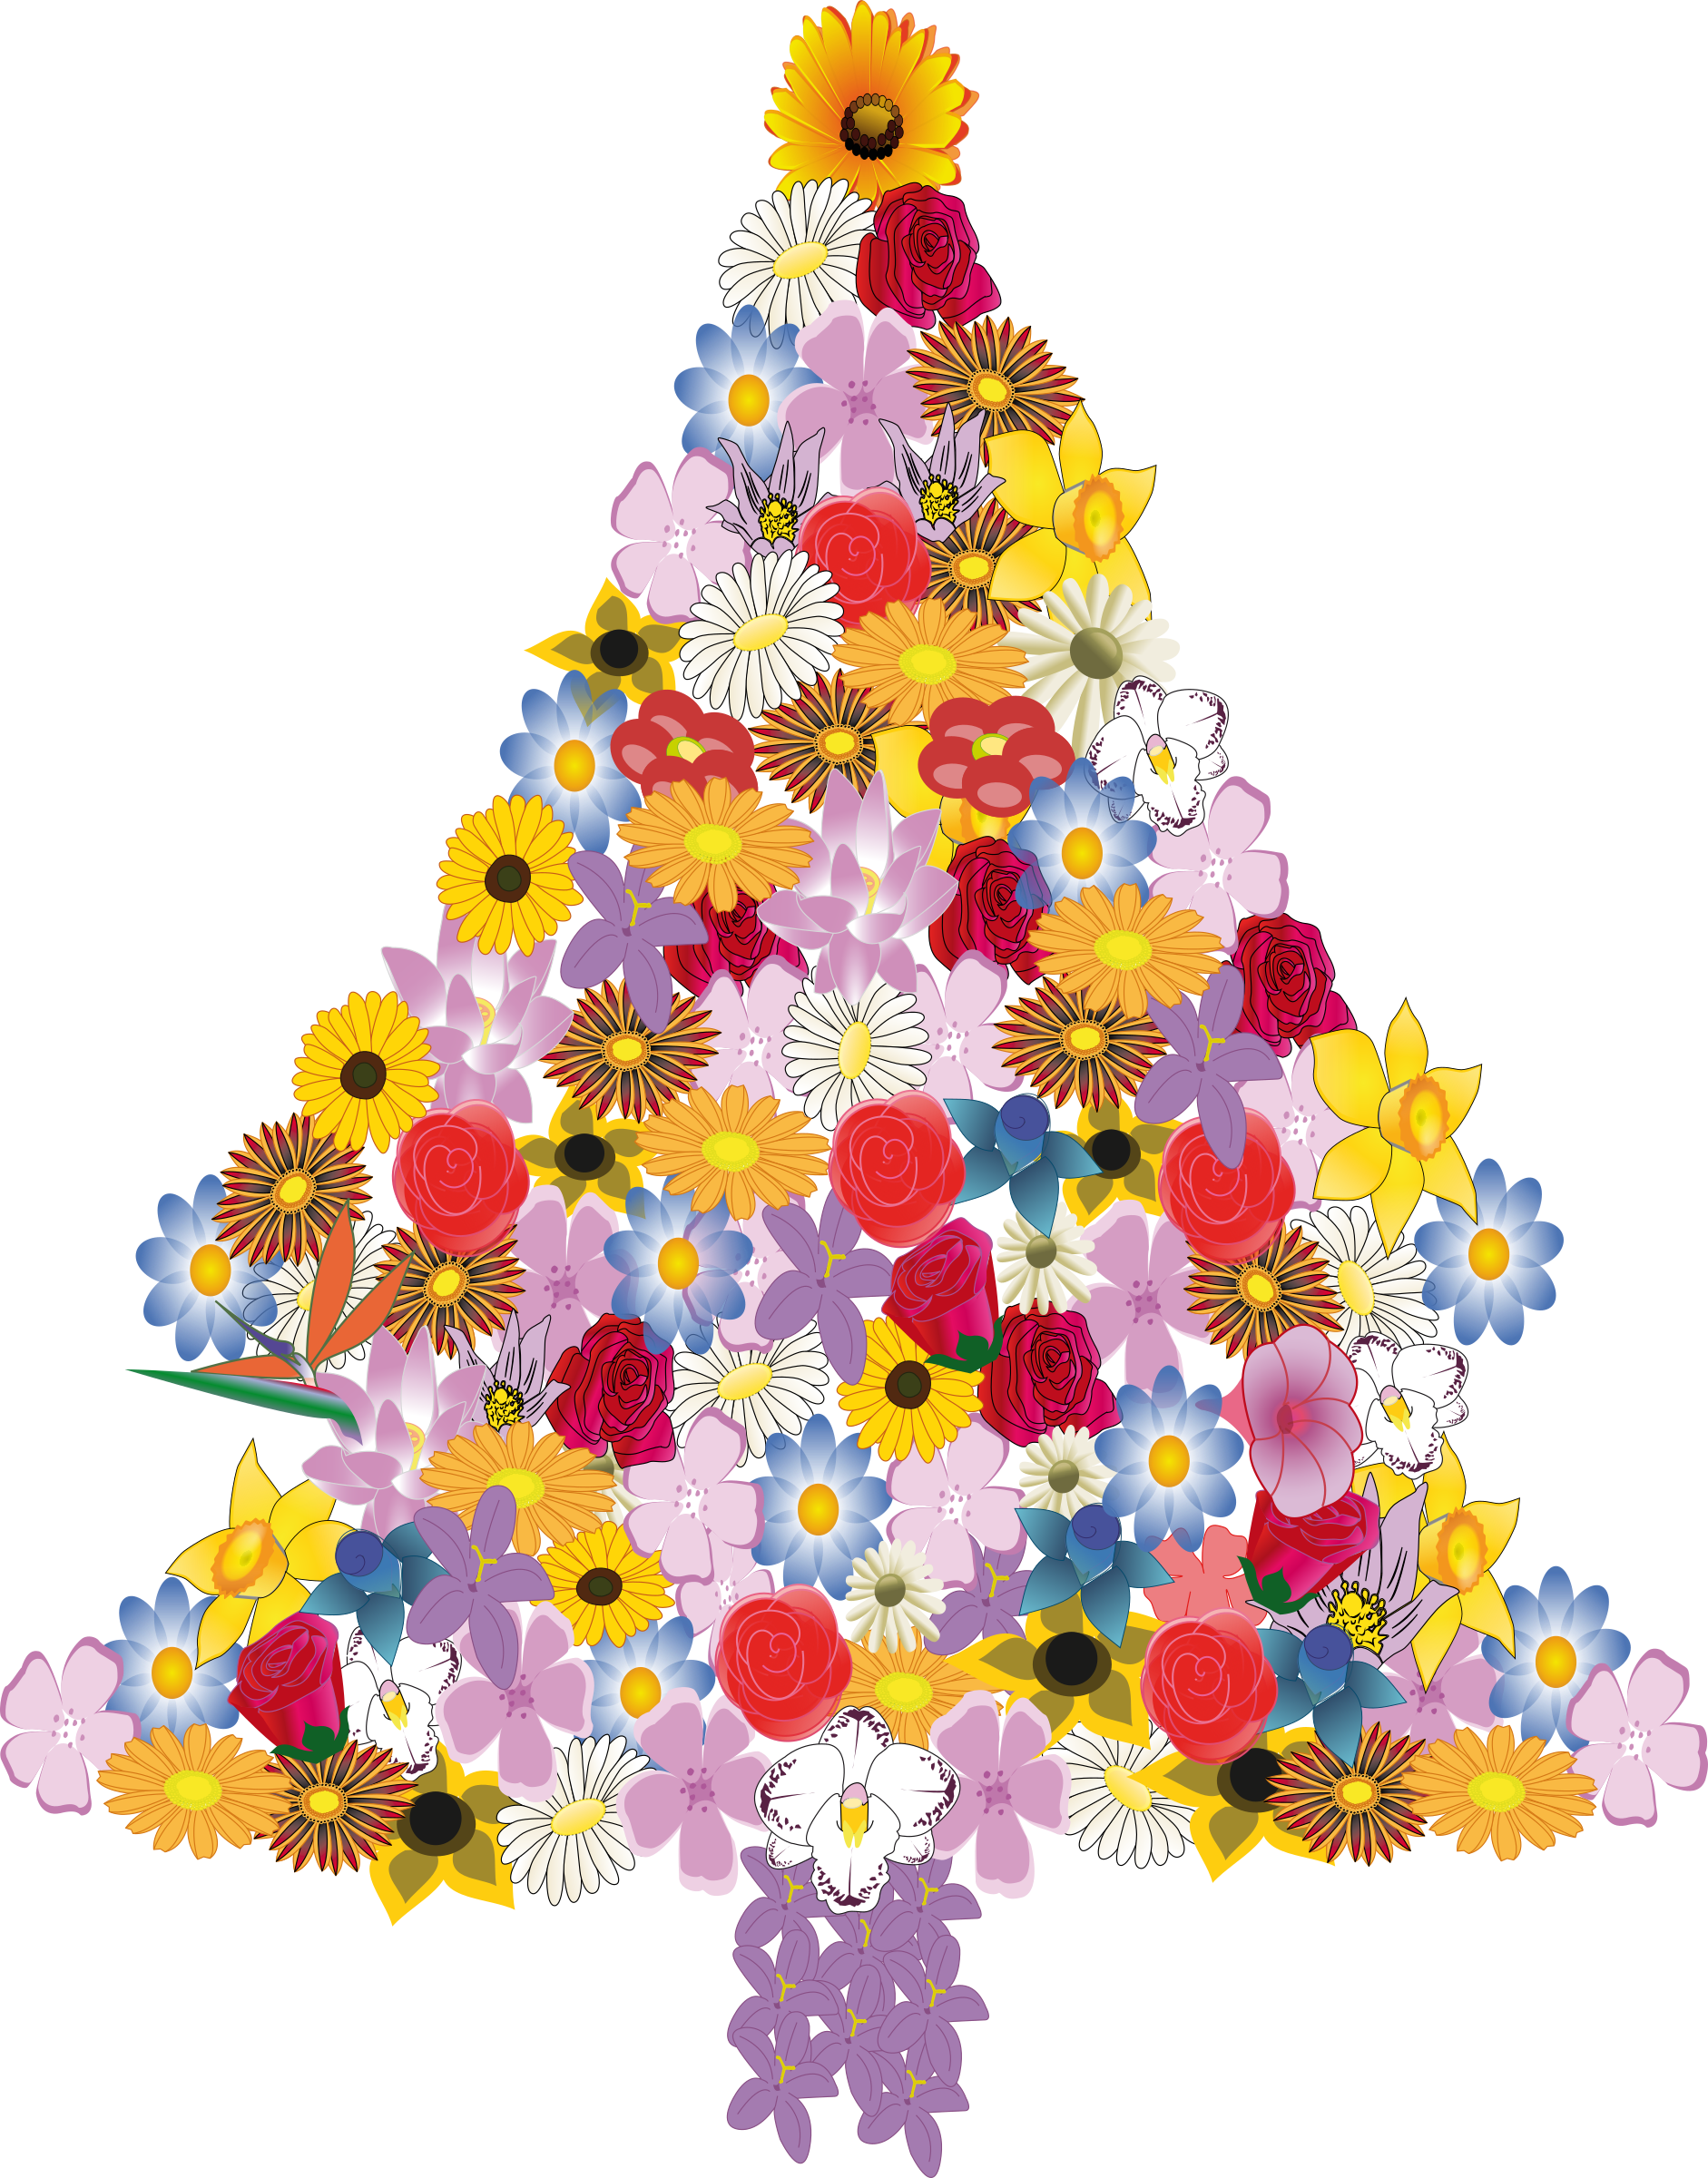 Christmas tree in bloom by presquesage